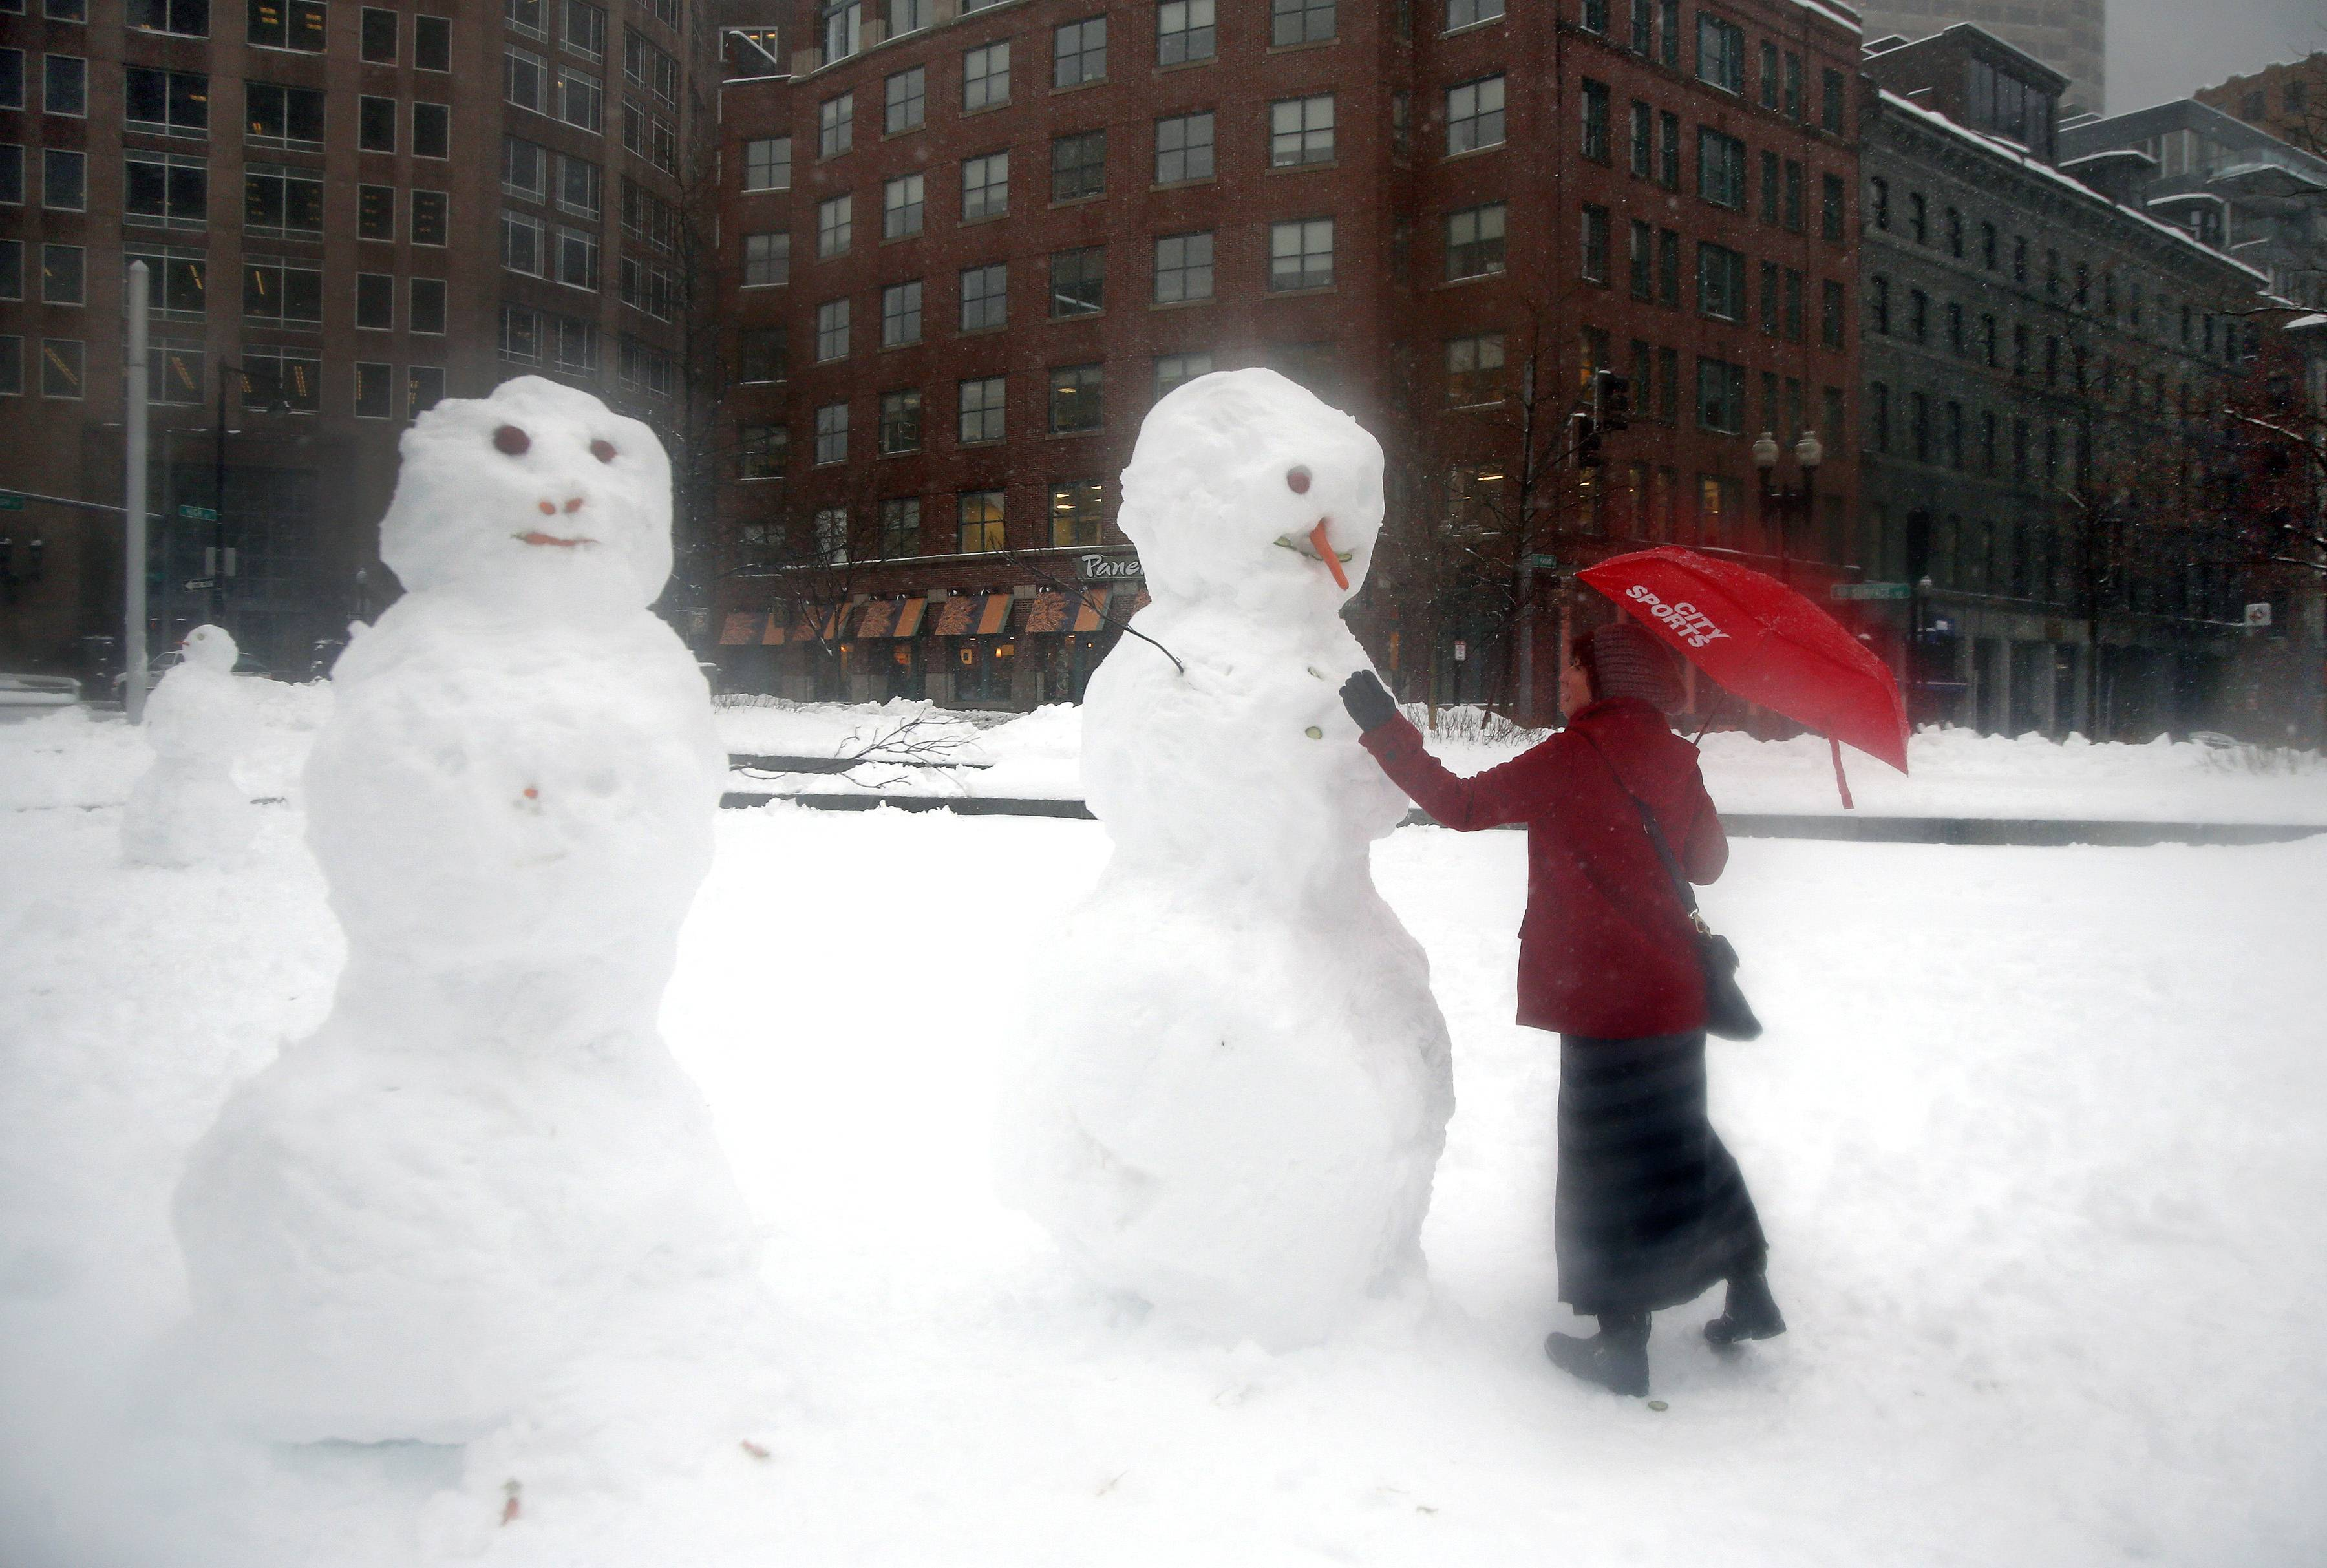 Shawn Meisl puts a finishing touch on a snowman in downtown Boston, Wednesday, Feb. 5, 2014. Up to a foot of snow was predicted to fall in parts of Massachusetts.